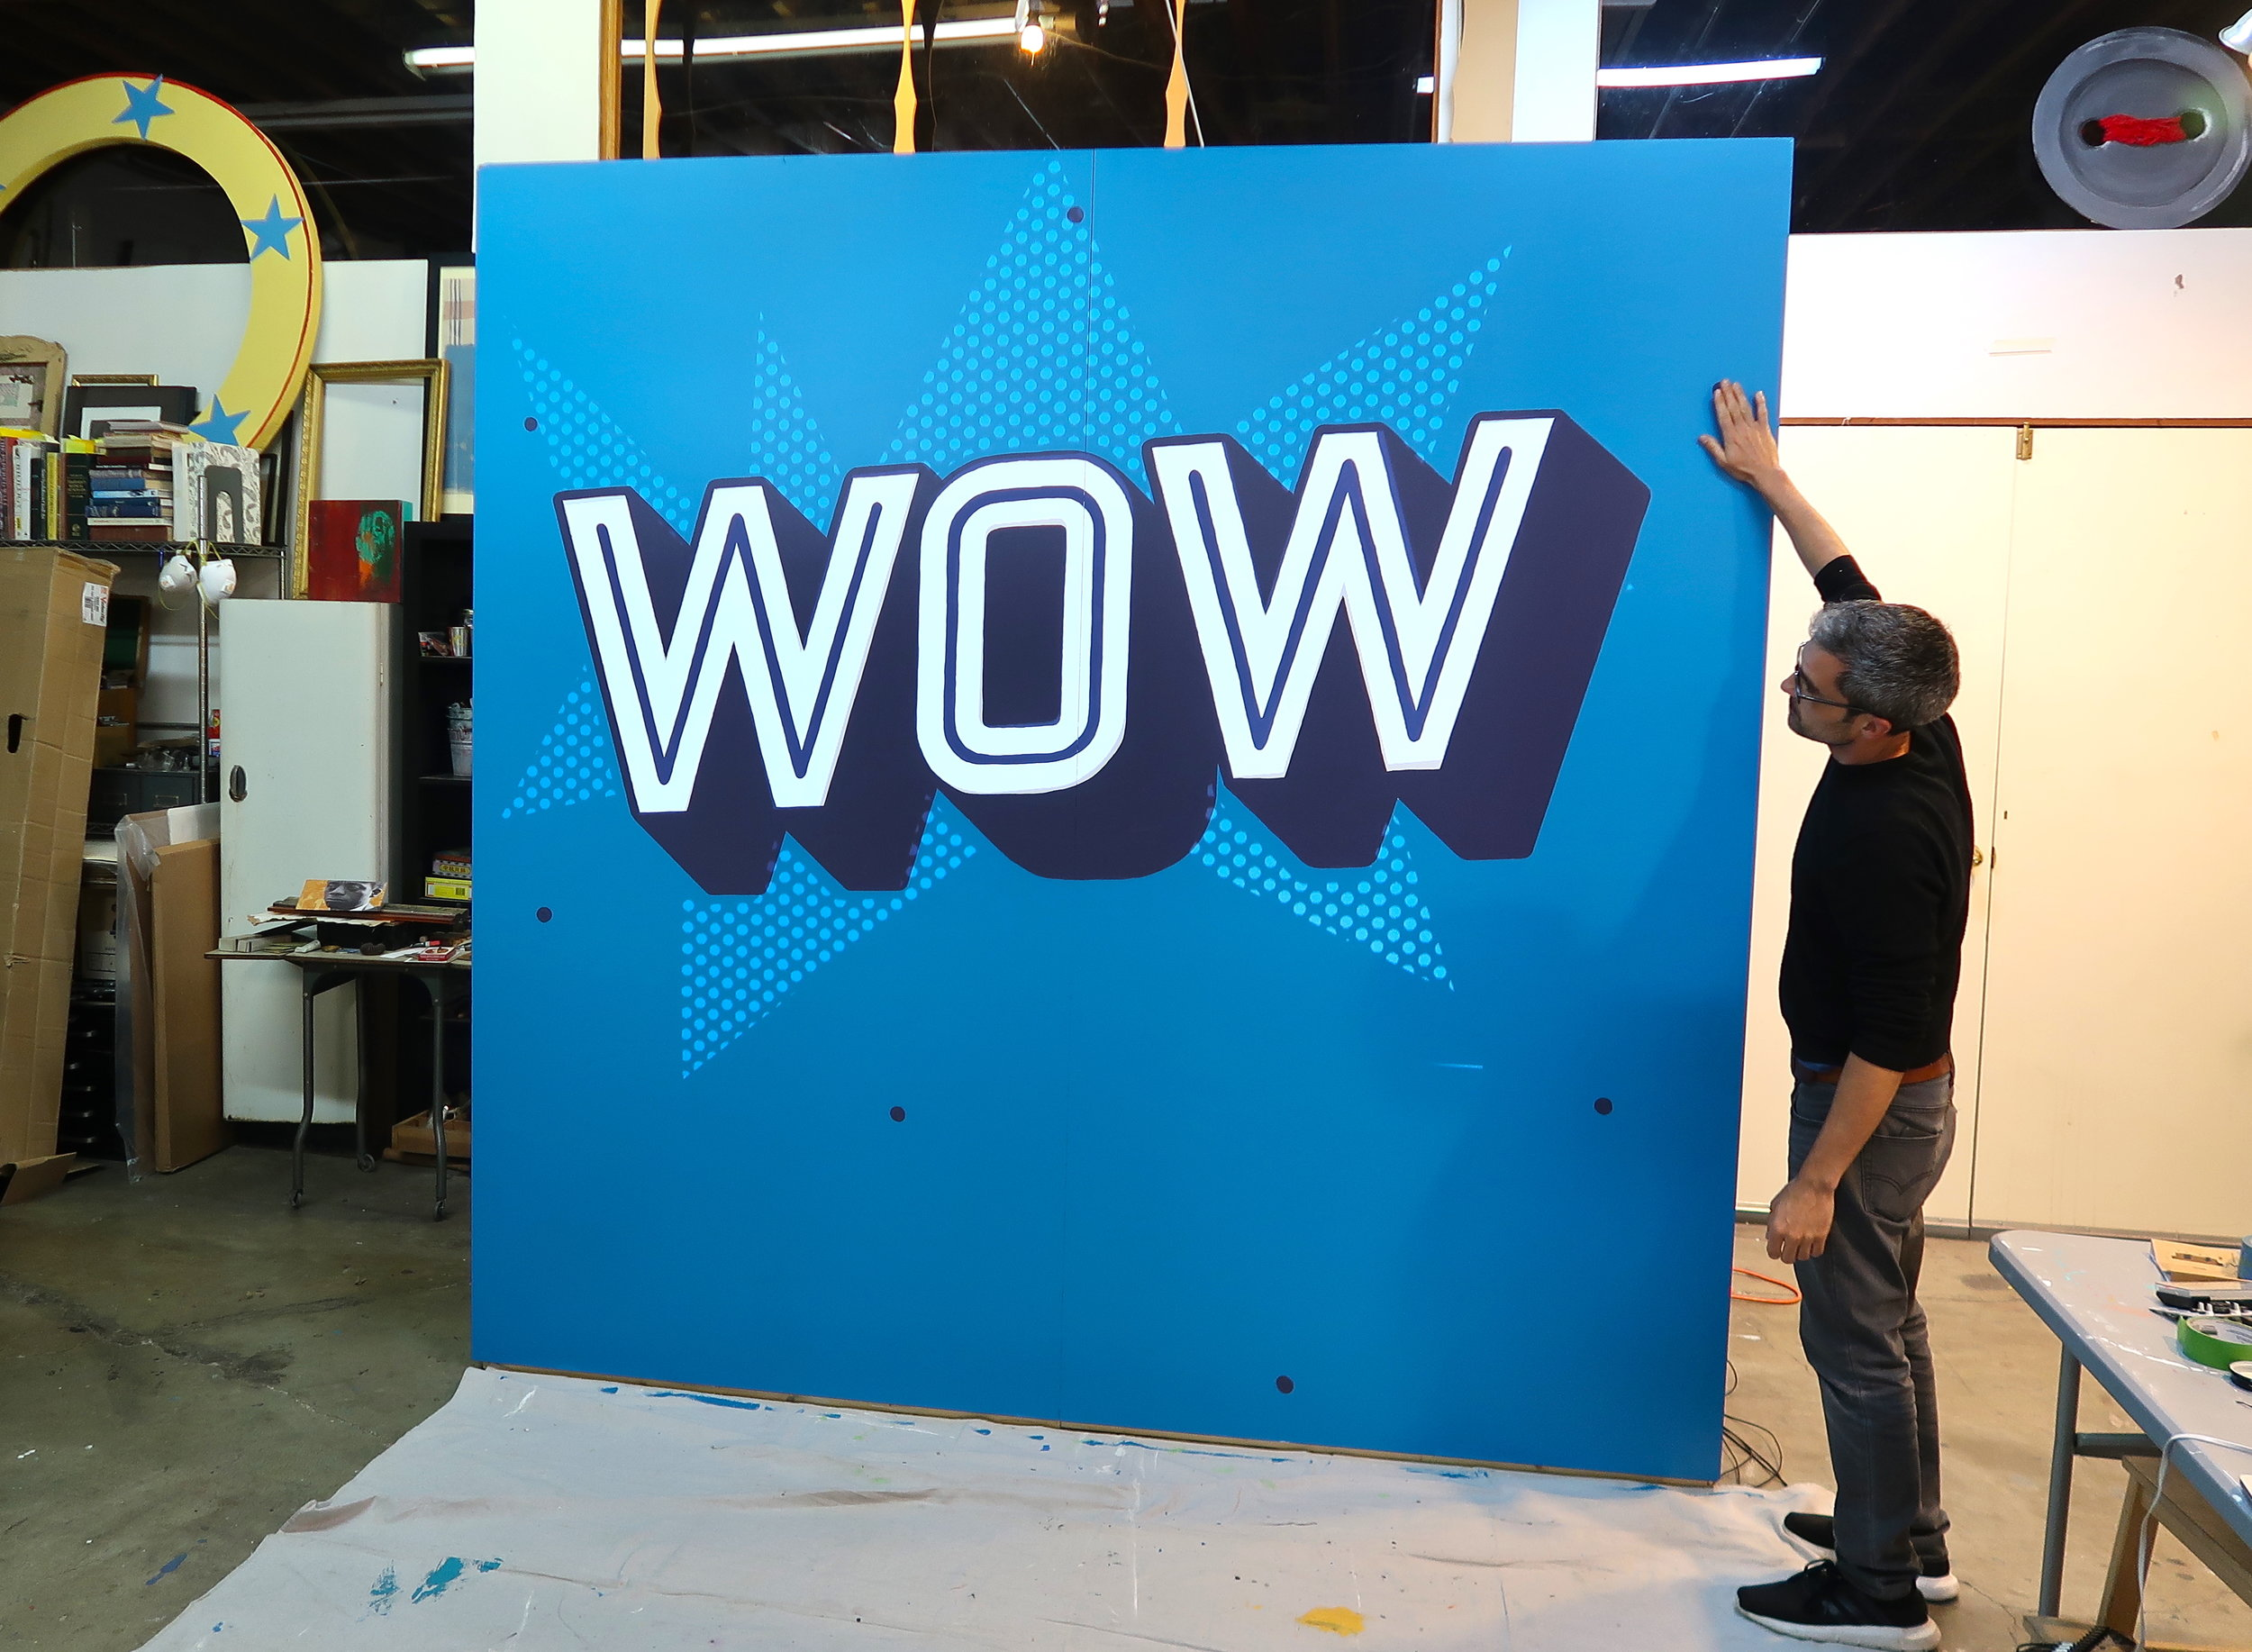 Event-mural-interactive-san-francisco-bare-conductive-wall-and-wall-mural-company_006.jpg